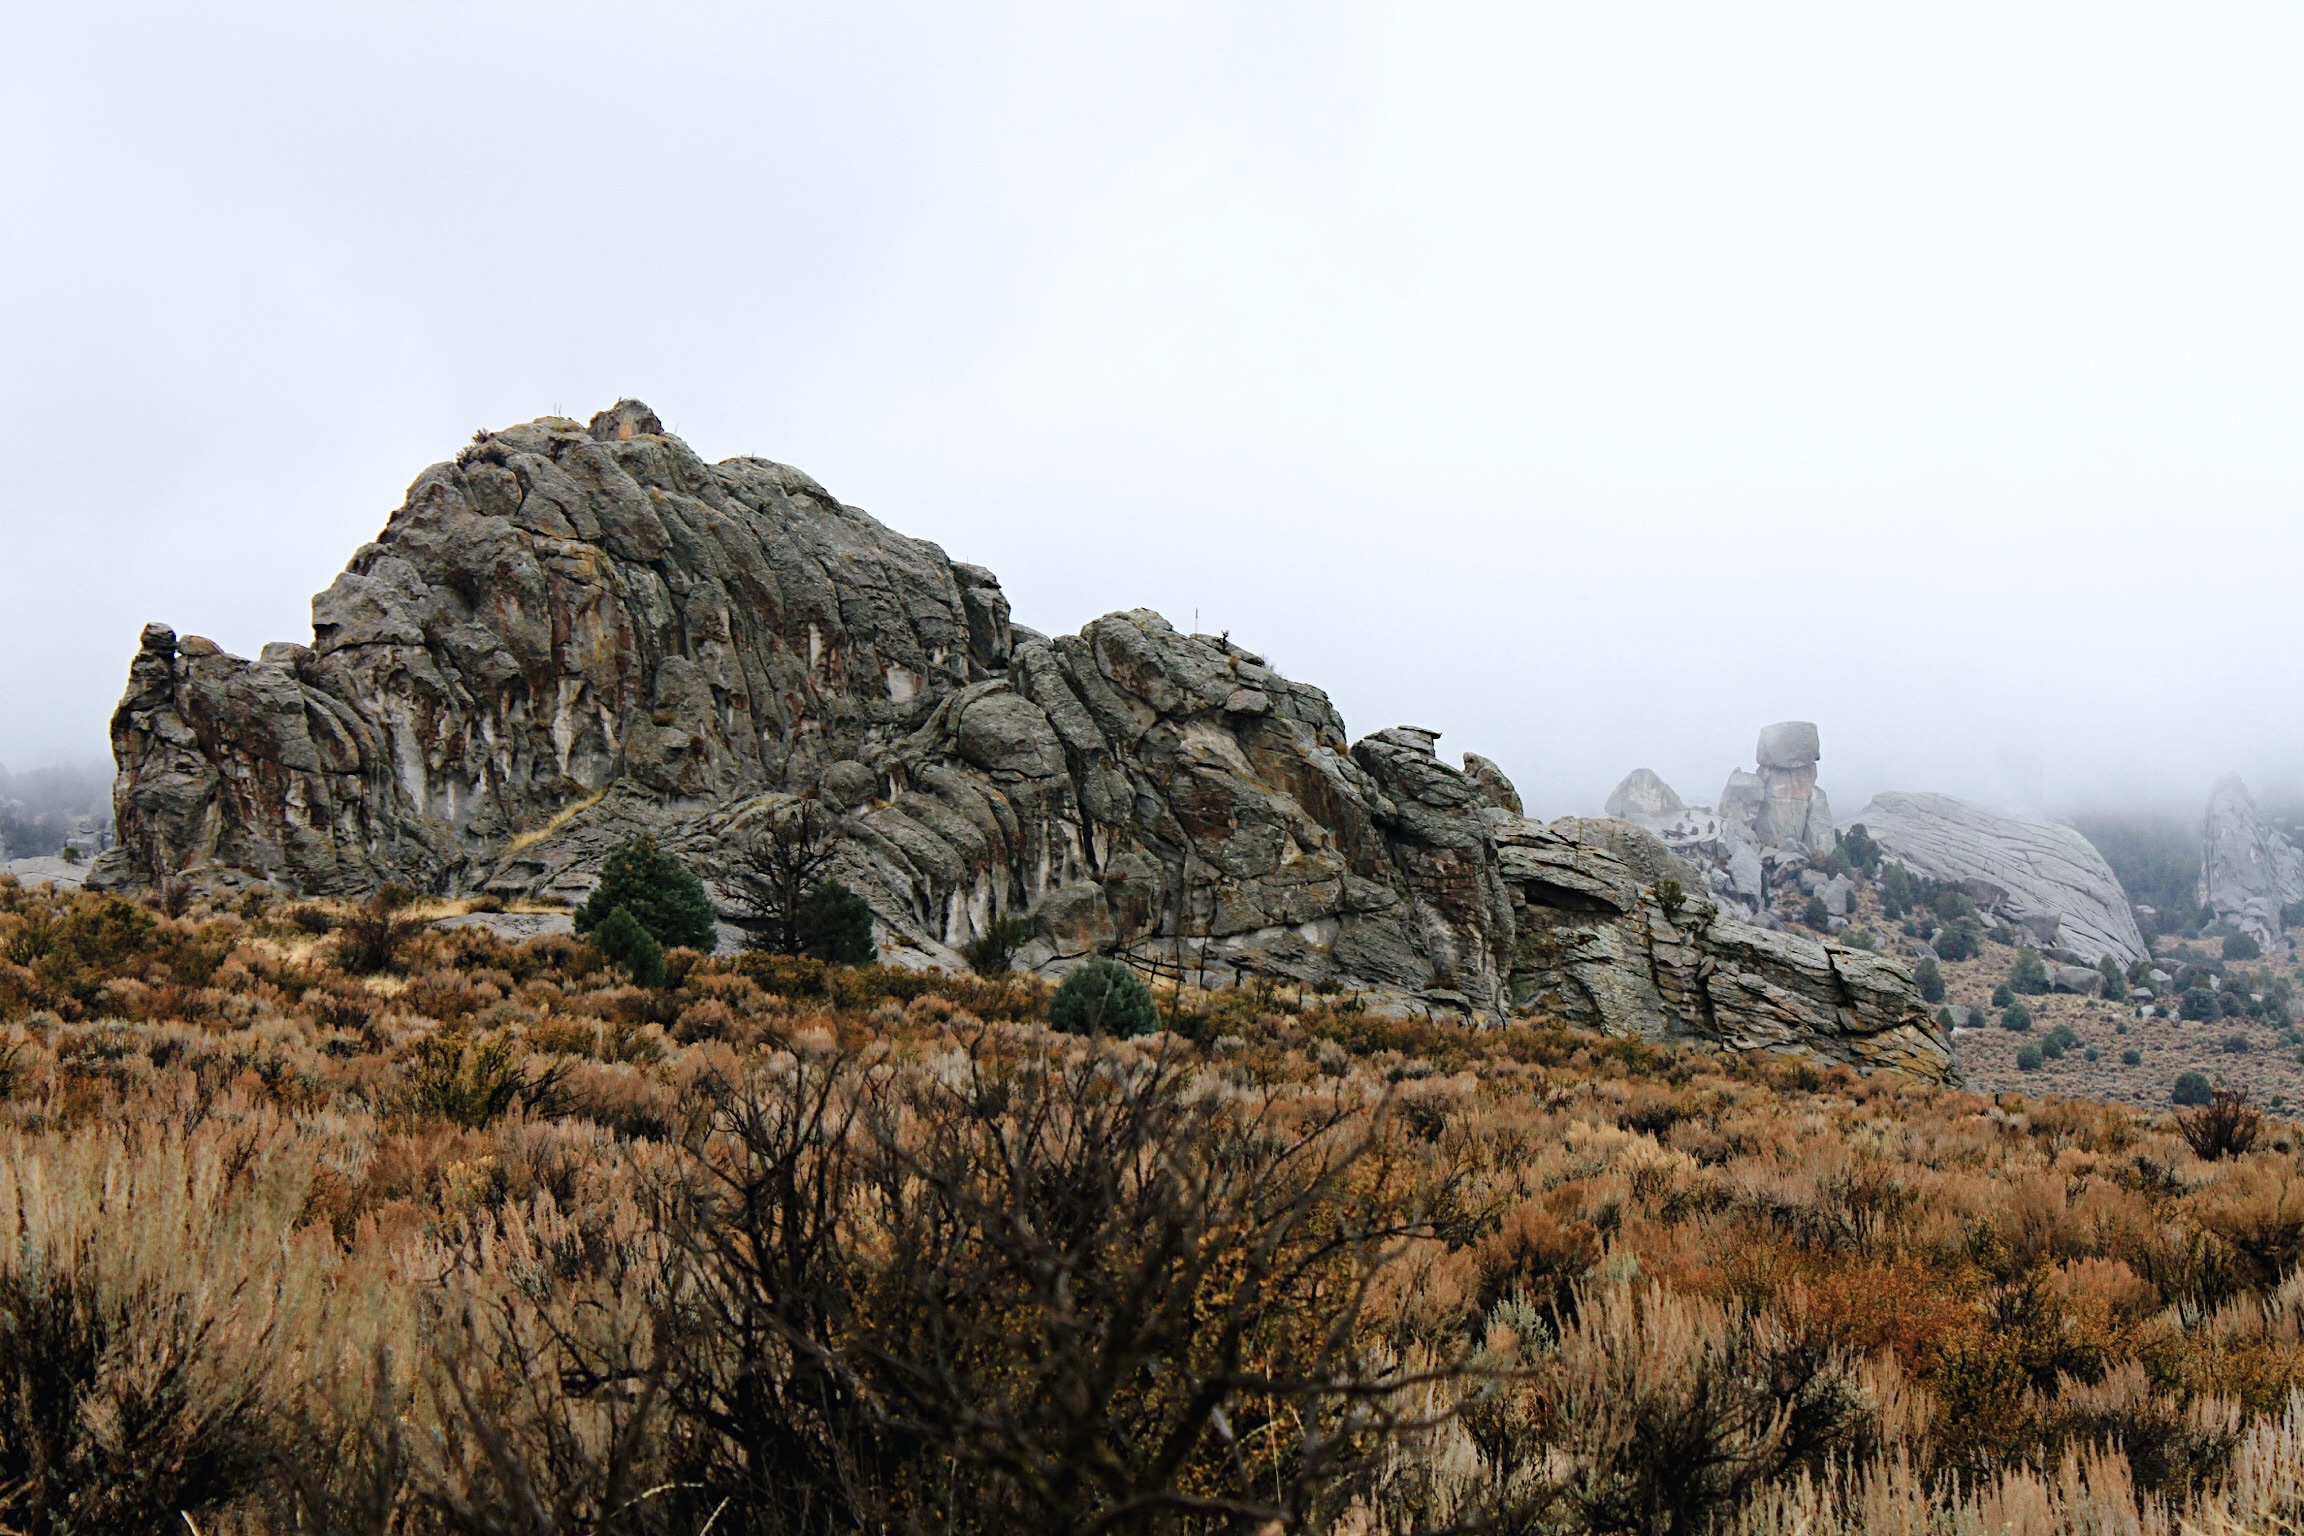 City of Rocks National Reserve || Malta, Idaho || beauty, nature, settlement, immigration, wonder, majestic